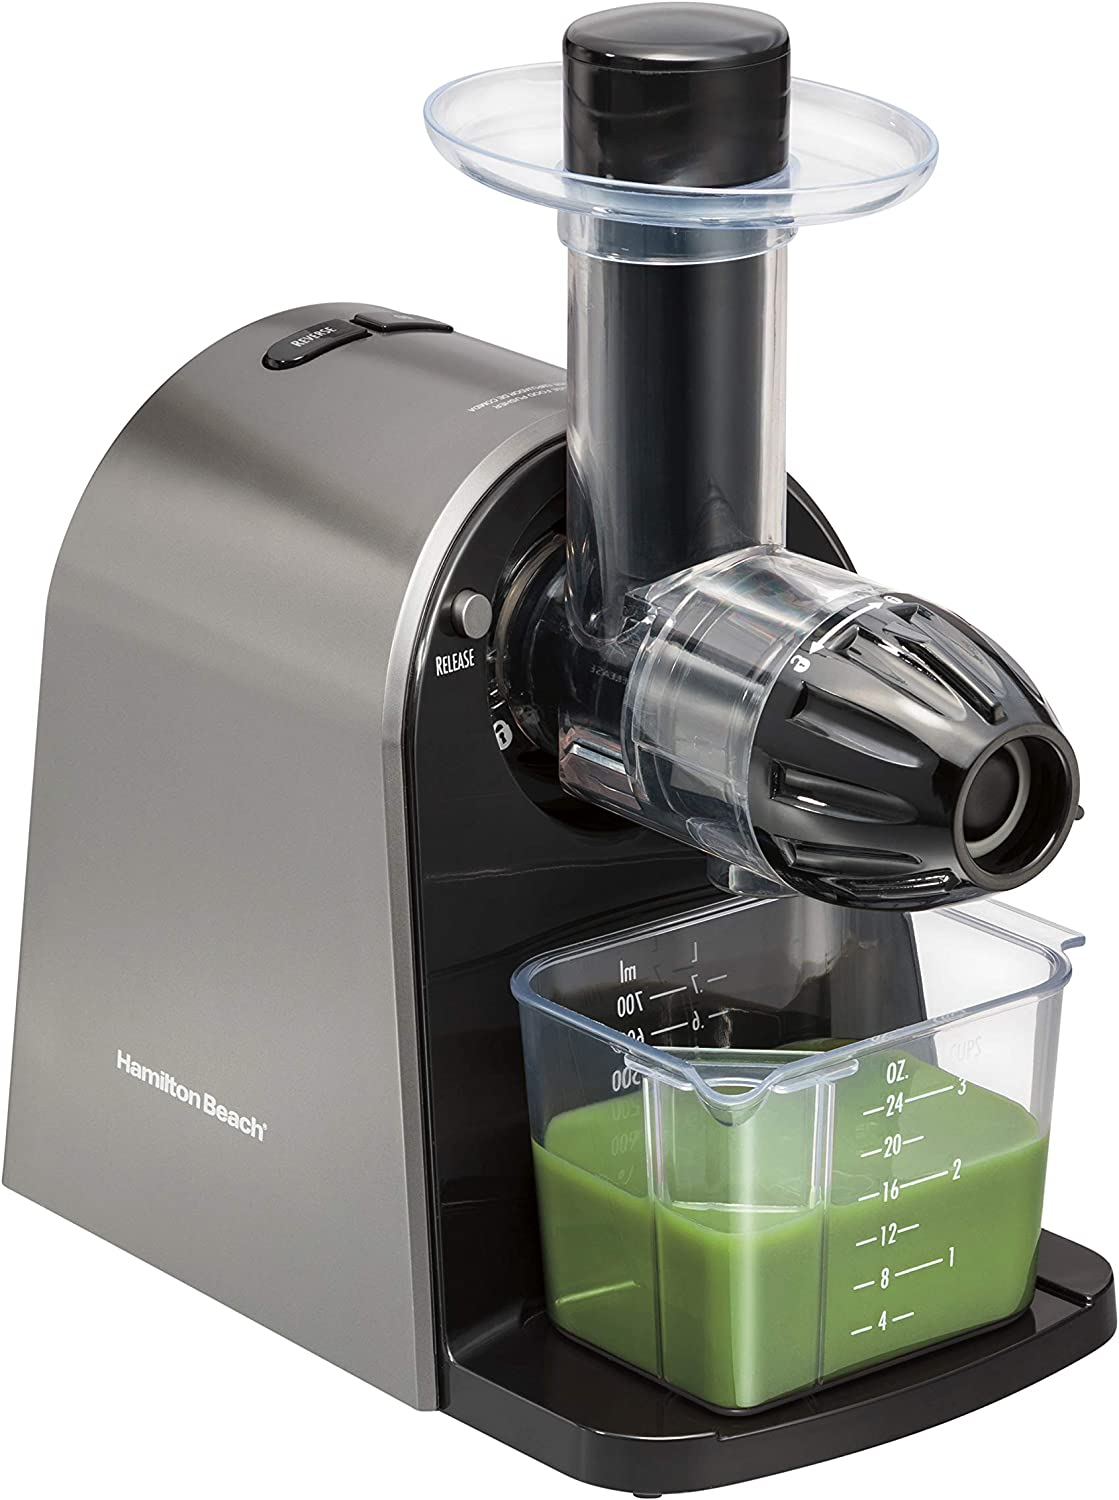 Best Hamilton Beach Juicers 2021 (Reviews) – Buying Guide 6